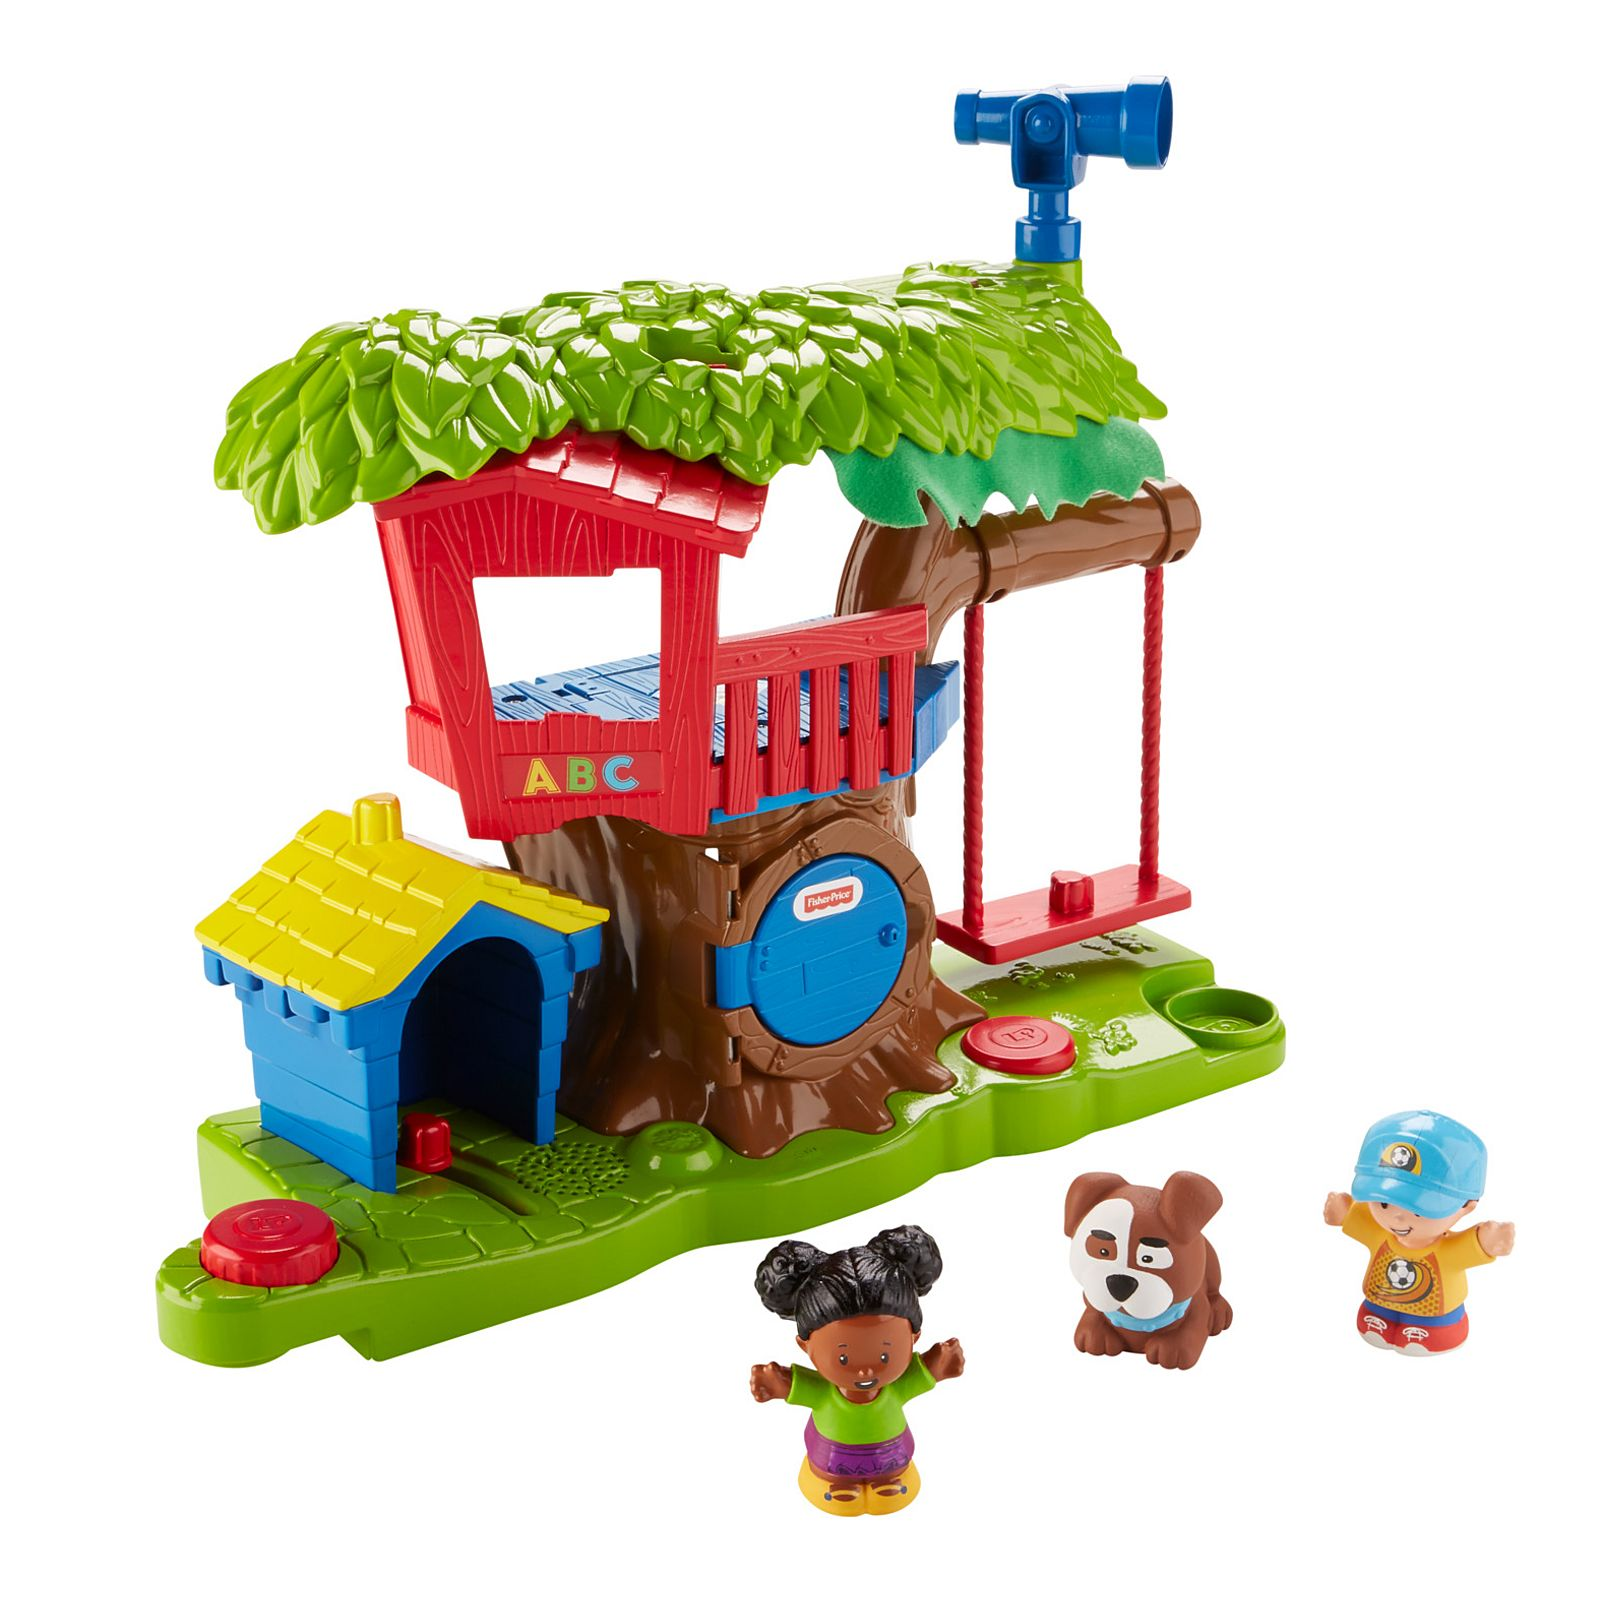 Little People Swing Share Treehouse Fisher Price